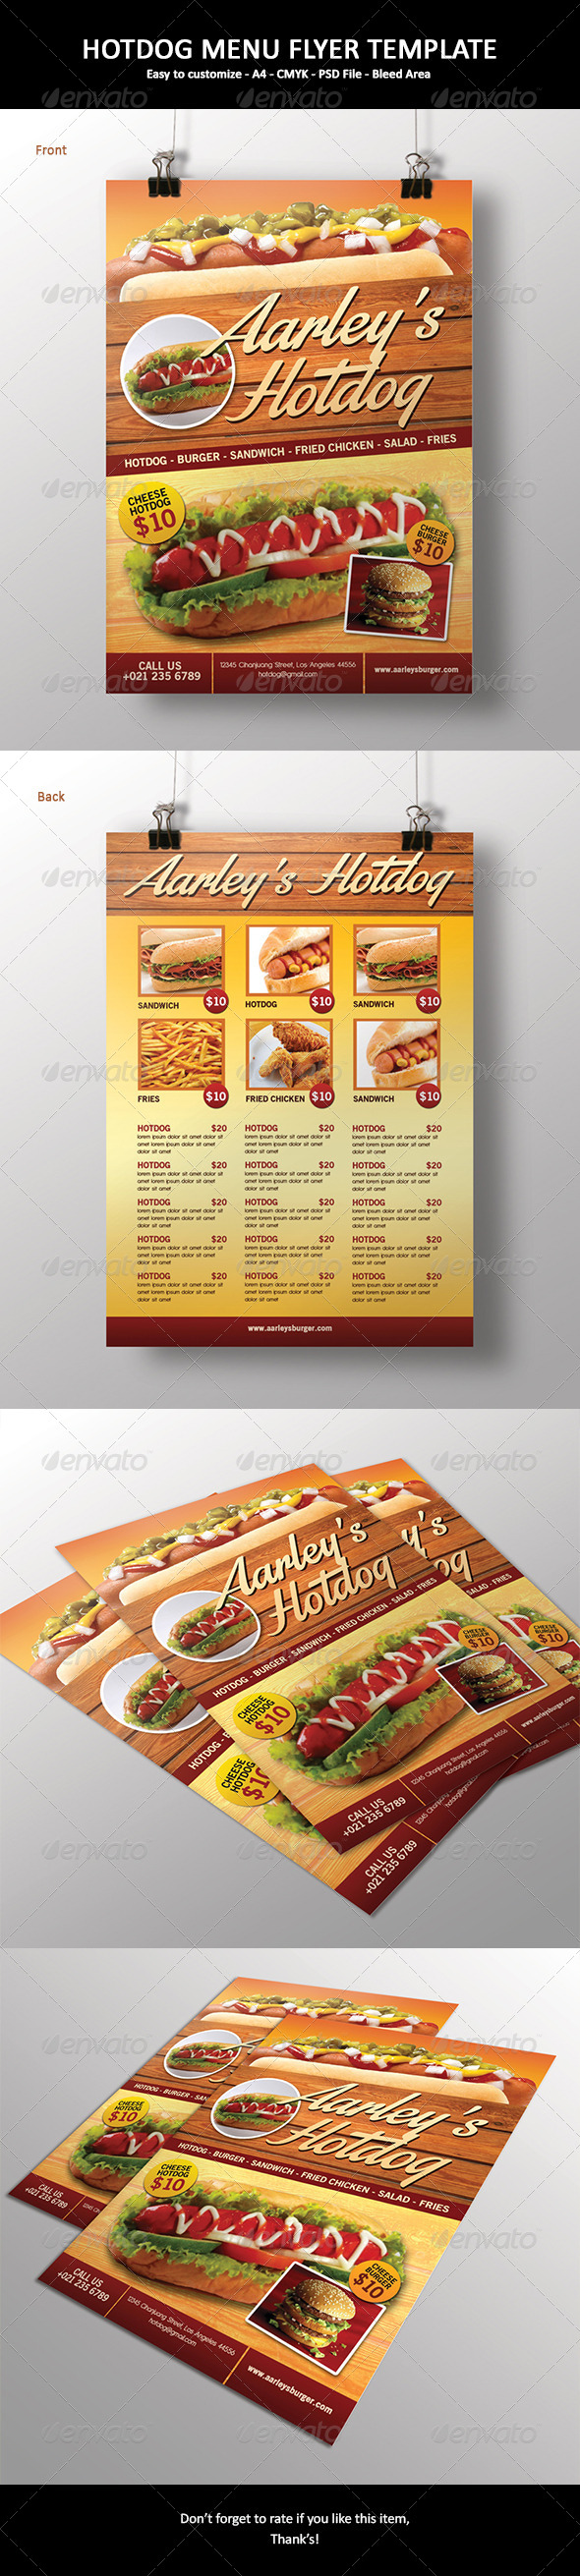 Hotdog Menu Flyer - Food Menus Print Templates